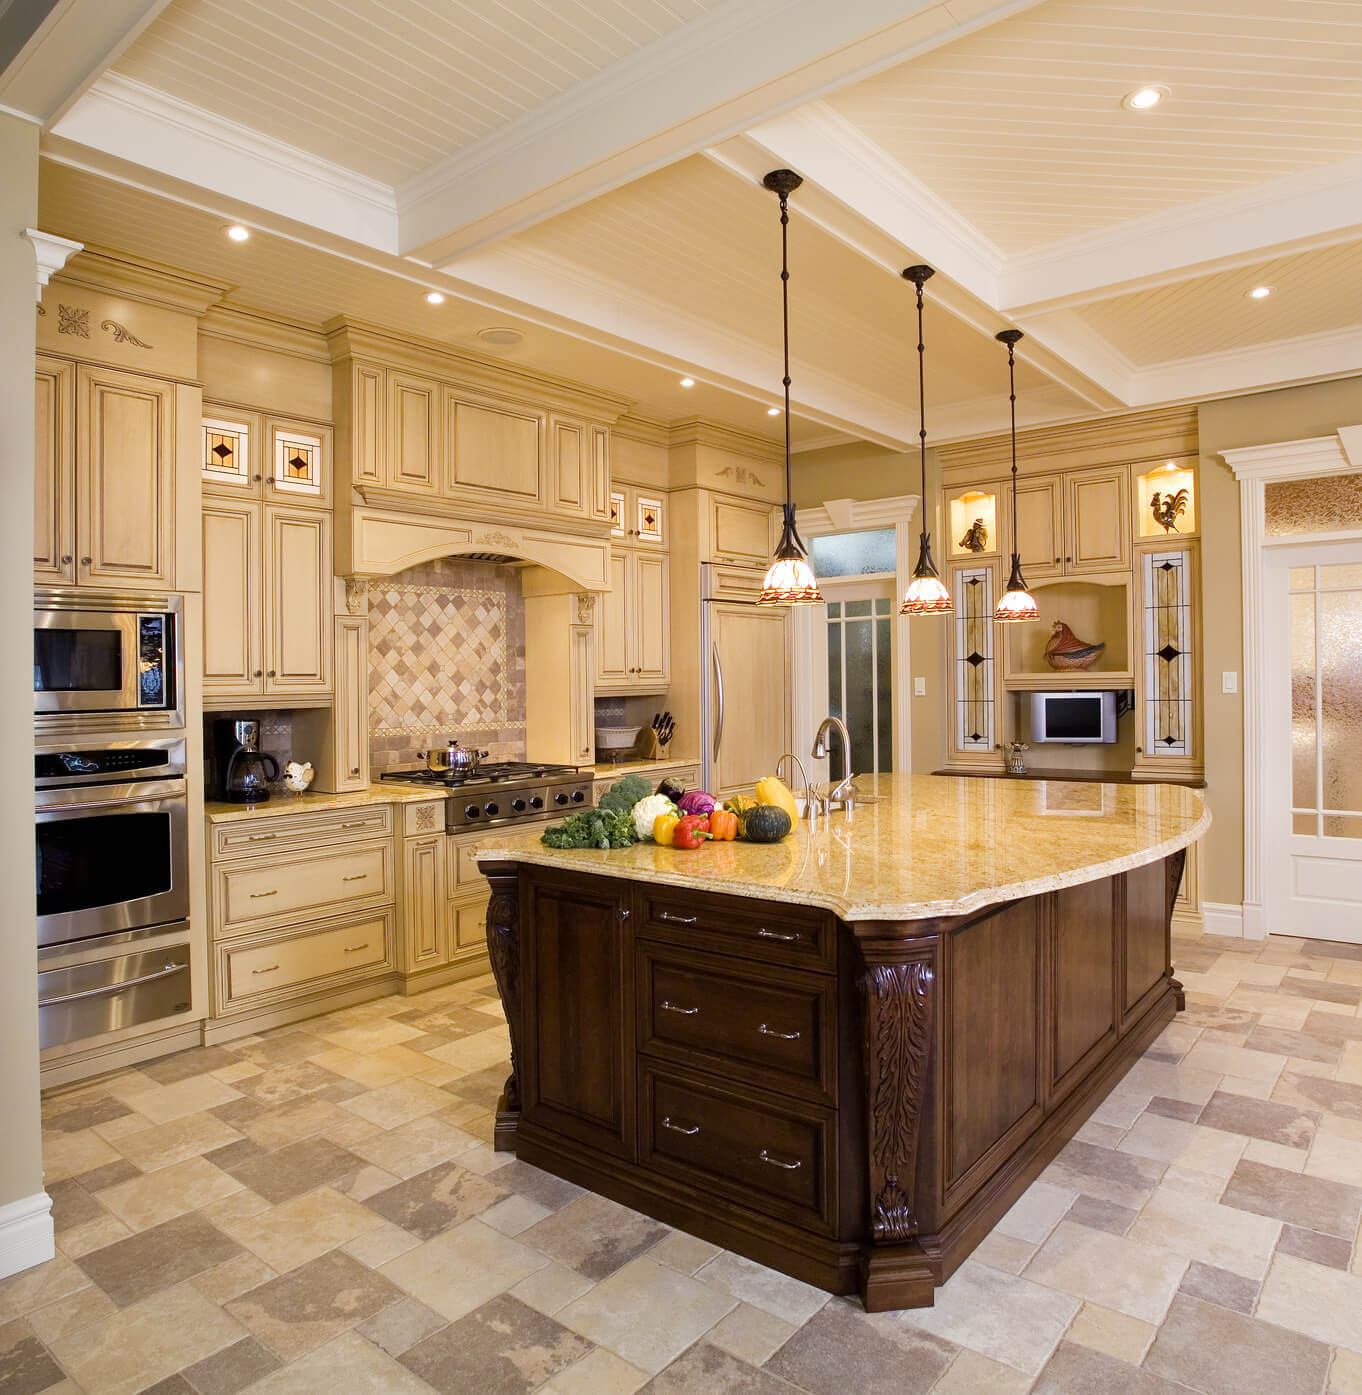 Luxury Kitchen Floor Tiles